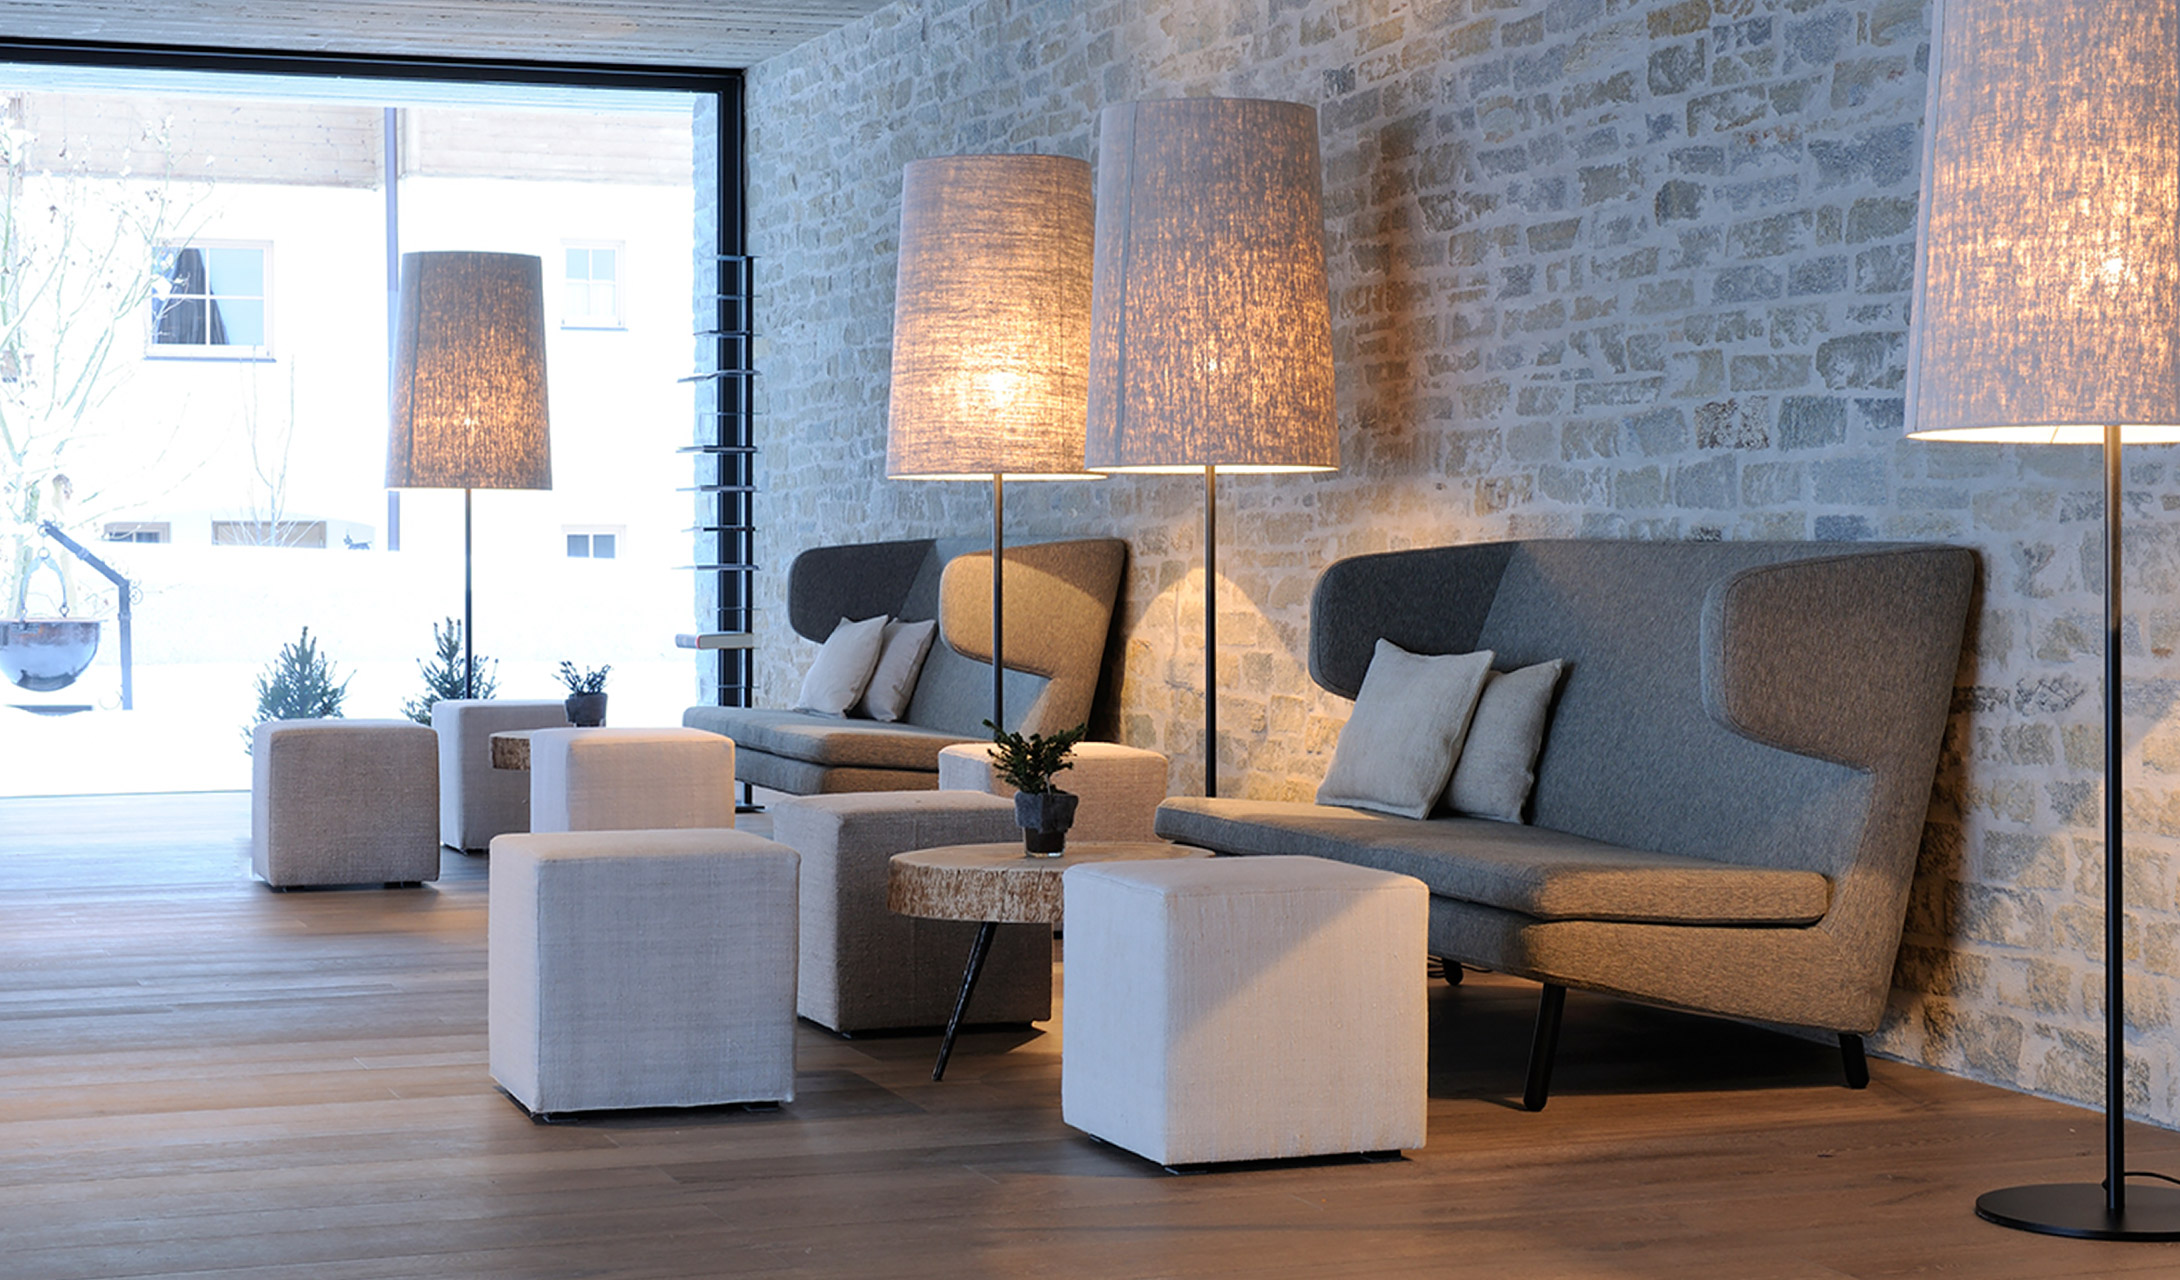 Wiesergut hinterglemm austria design hotels for Design hotel speicher 7